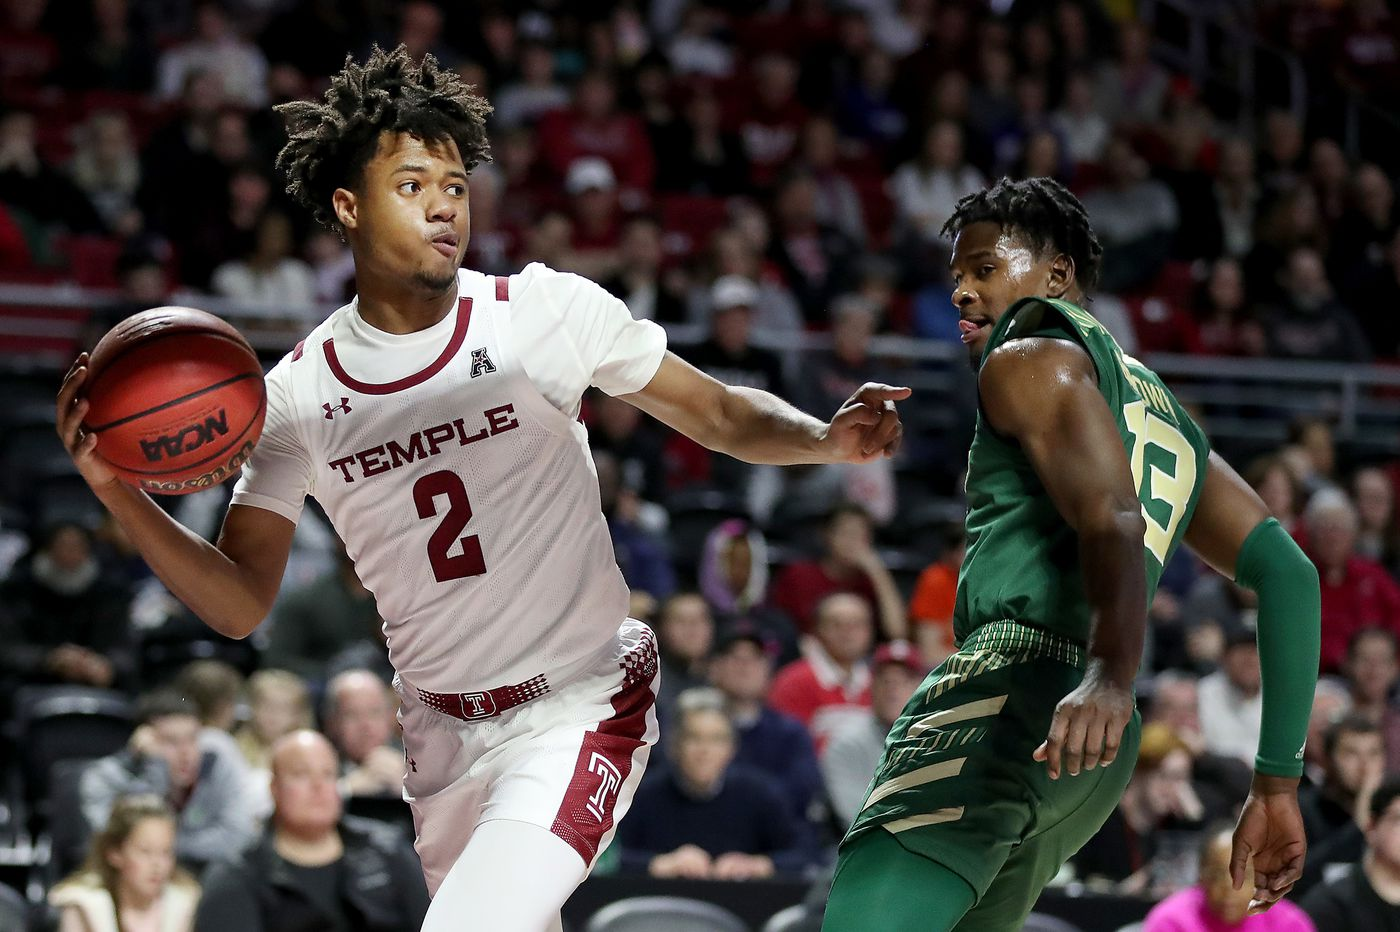 Temple guard Monty Scott to enter NCAA basketball transfer portal